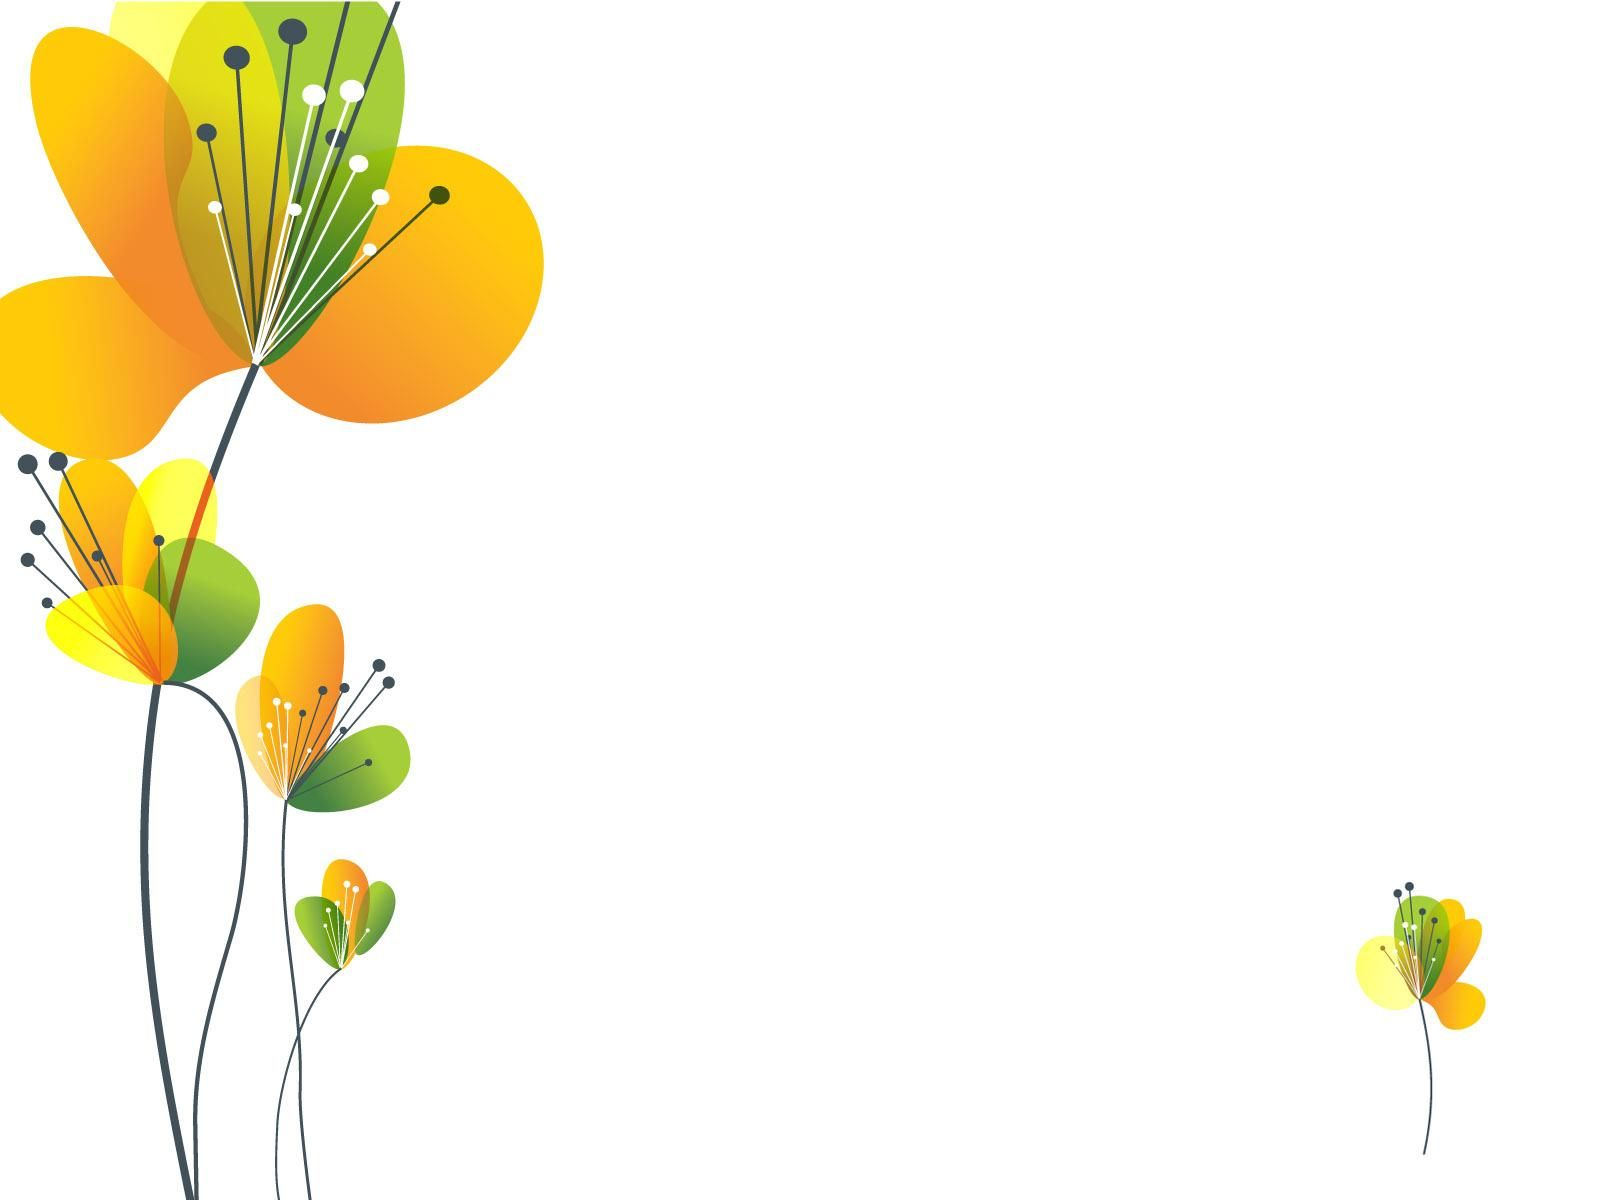 Spring flowers clipart clipart kid - Yellow Spring Flower Ppt Ppt Backgrounds Flowers Green